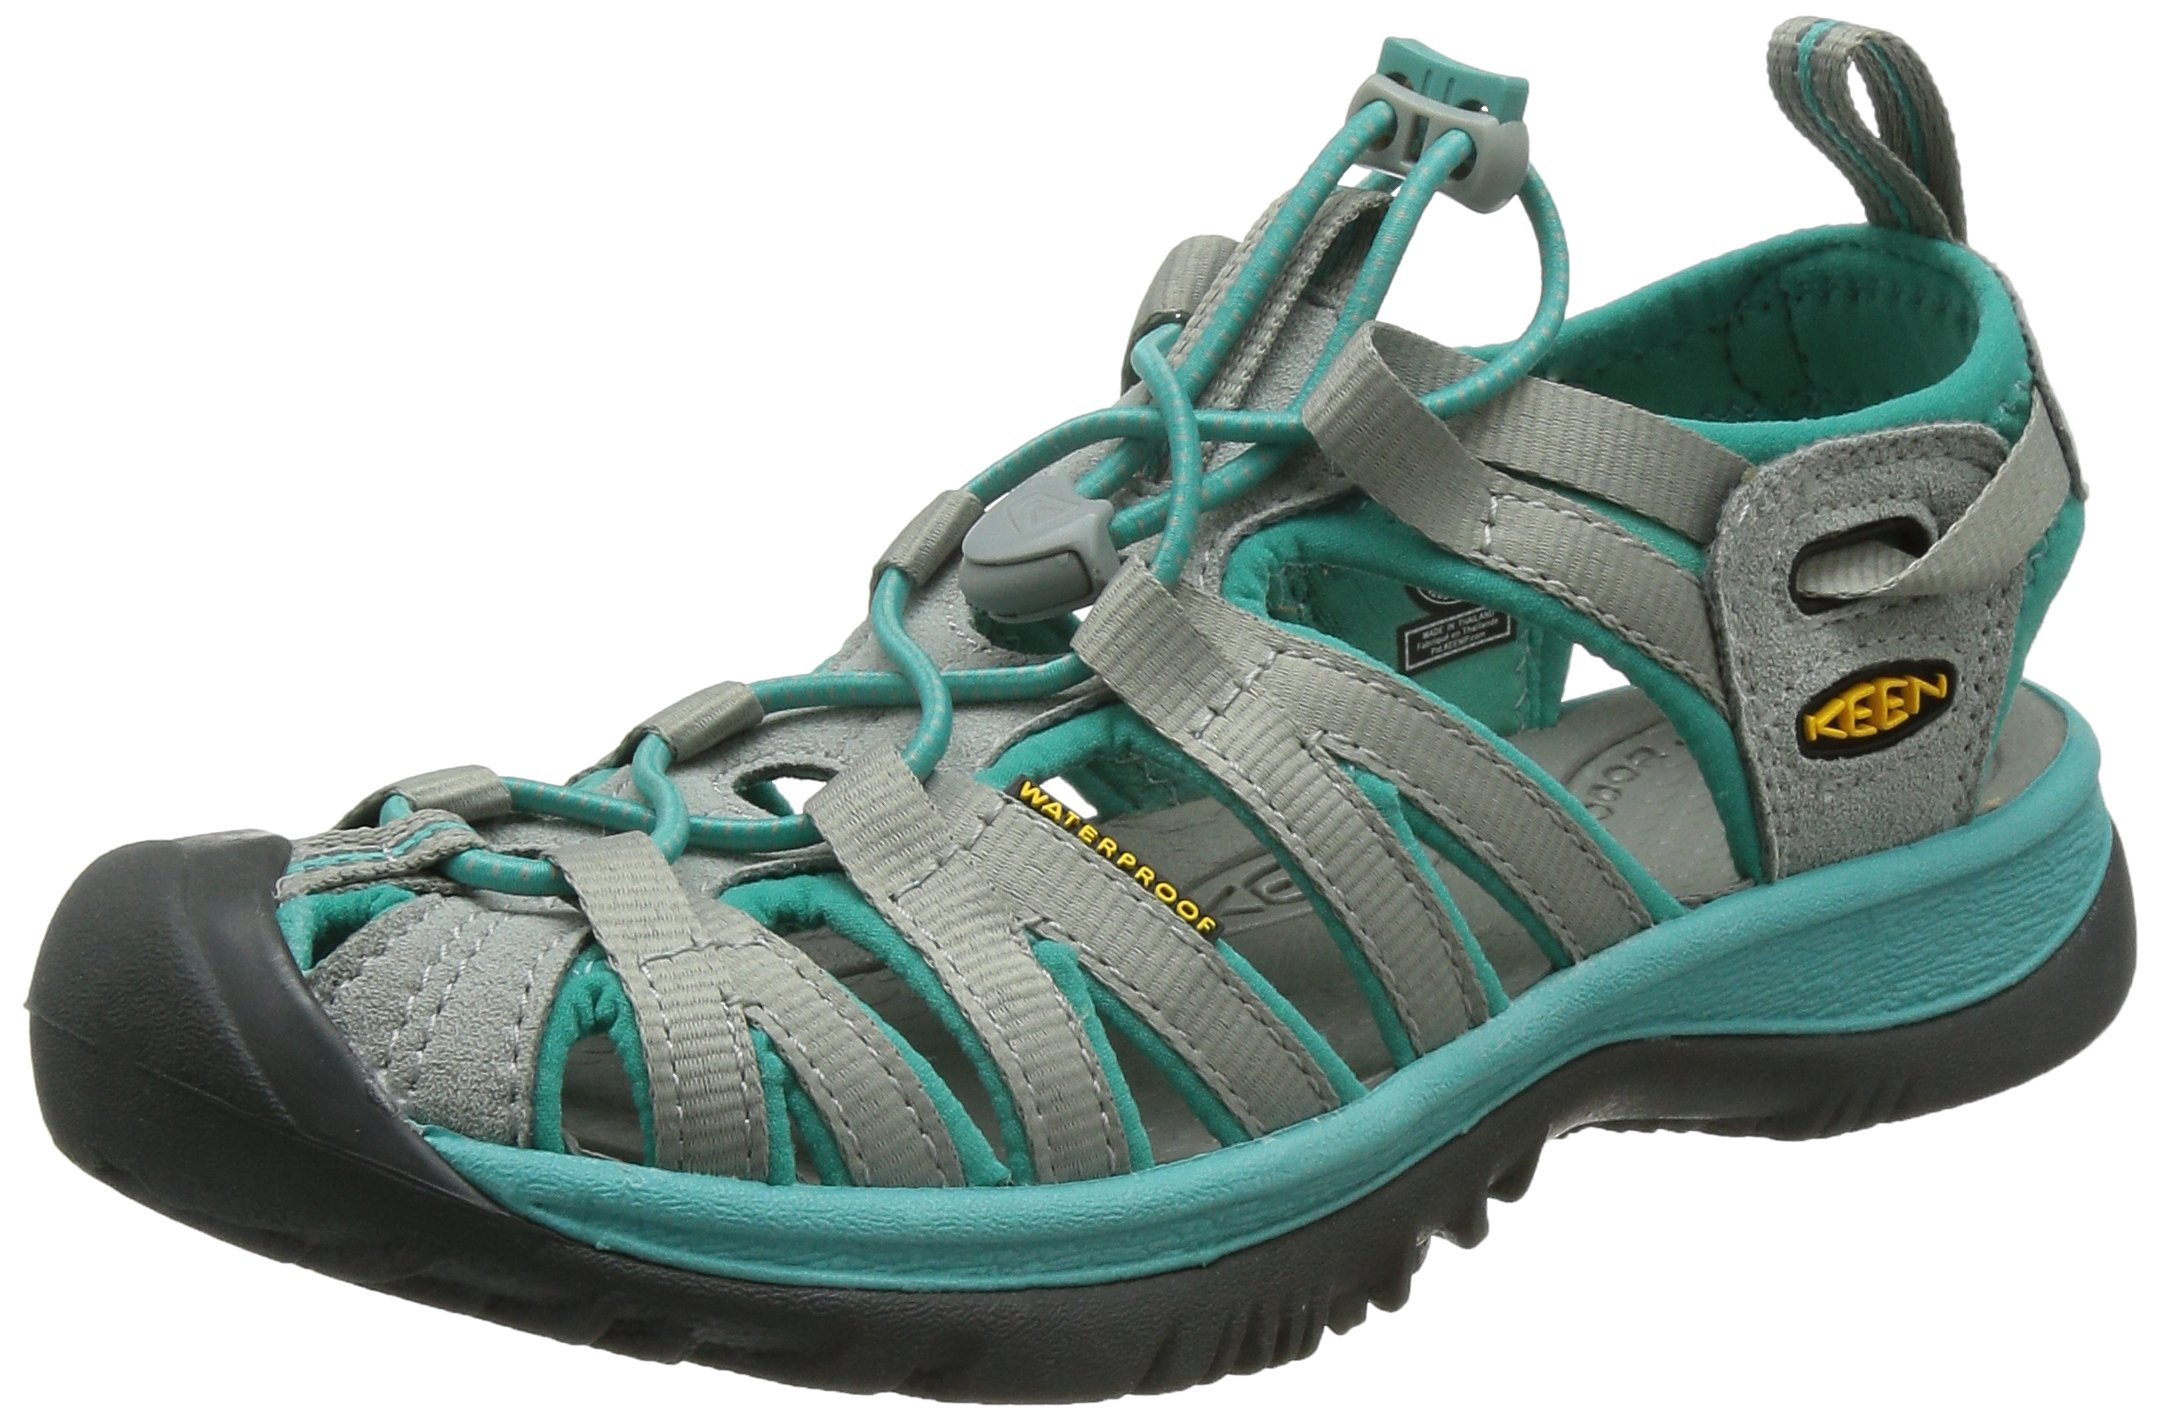 KEEN Women's Whisper Sandal,Neutral Gray/Lagoon,7 M US